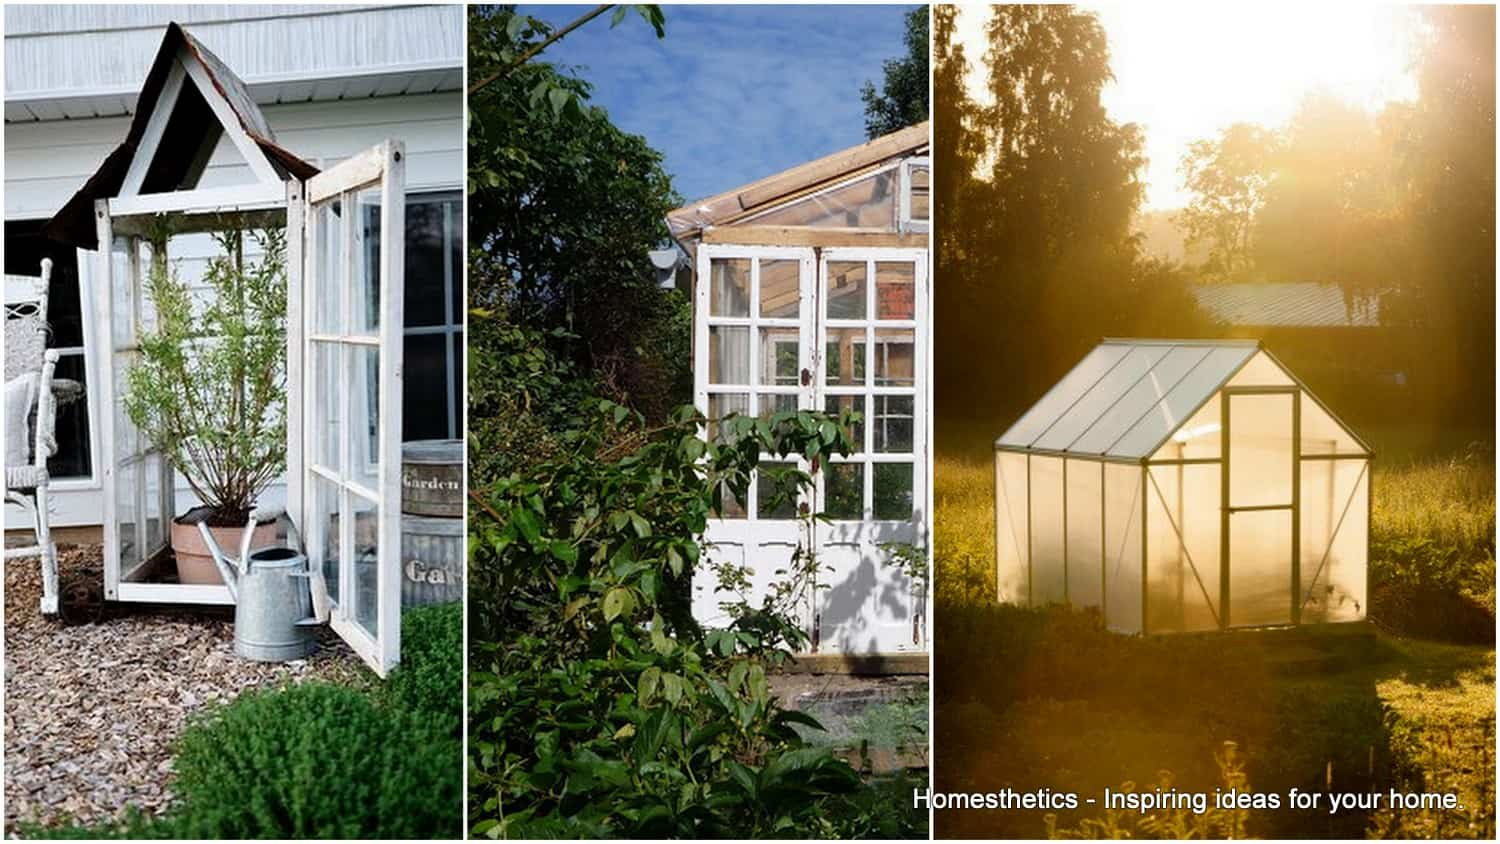 72 FREE DIY Greenhouse Plans to Build Right Now Greenhouse Plans Designs Single Slope on greenhouse cabinets, easy greenhouse plans, big greenhouse plans, backyard greenhouse plans, greenhouse garden designs, winter greenhouse plans, small greenhouse plans, attached greenhouse plans, homemade greenhouse plans, lean to greenhouse plans, diy greenhouse plans, pvc greenhouse plans, solar greenhouse plans, greenhouse architecture, greenhouse ideas, greenhouse layout, greenhouse windows, wood greenhouse plans, a-frame greenhouse plans, hobby greenhouse plans,